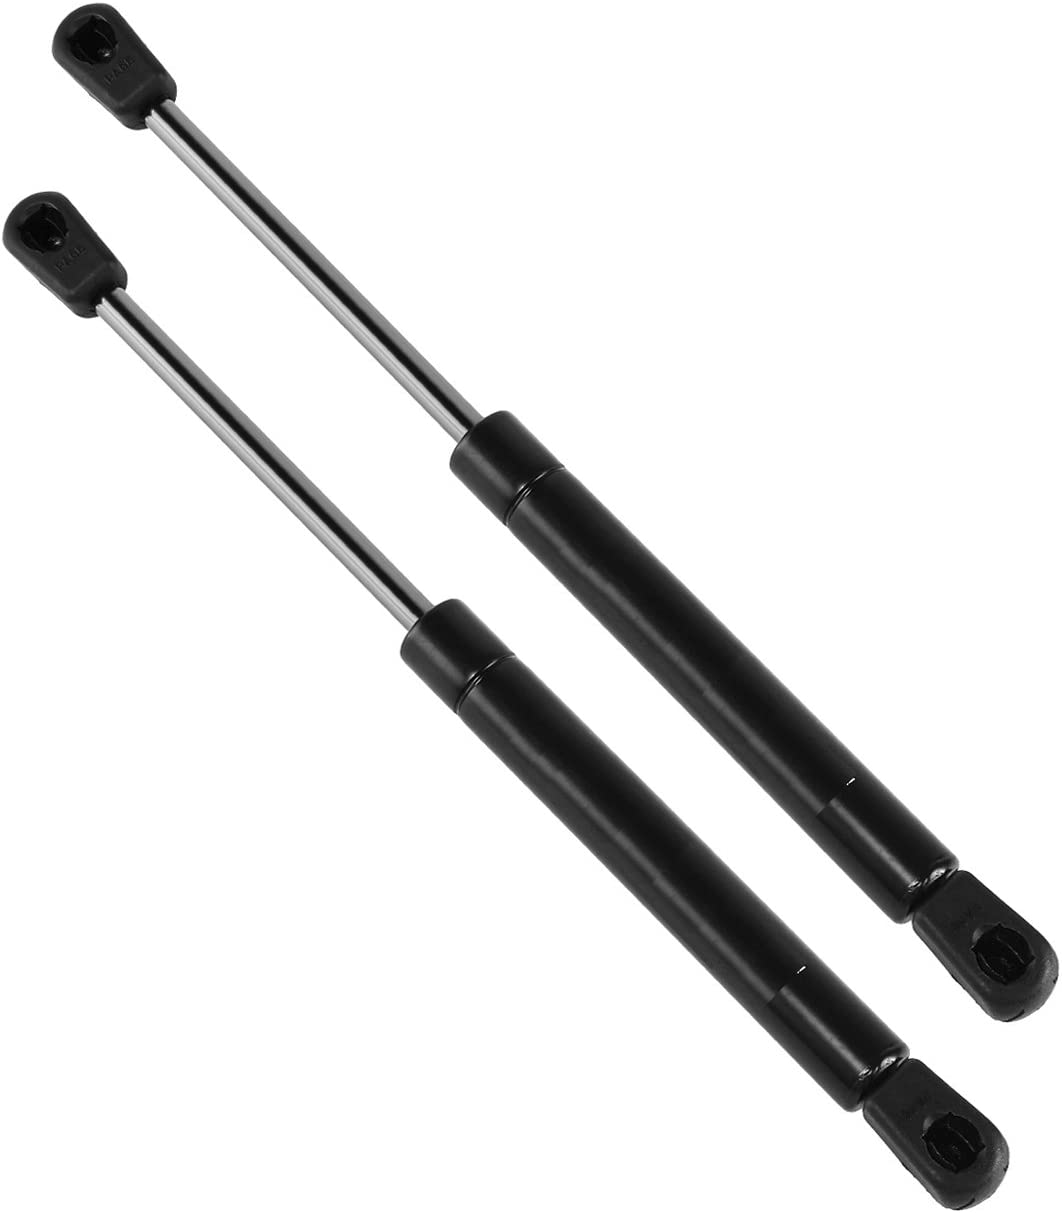 Monte Carlo 1999-2007 Rear Trunk Lift Supports Gas Spring Struts Shocks 4120 for Impala 2000-2005 Pack of 2